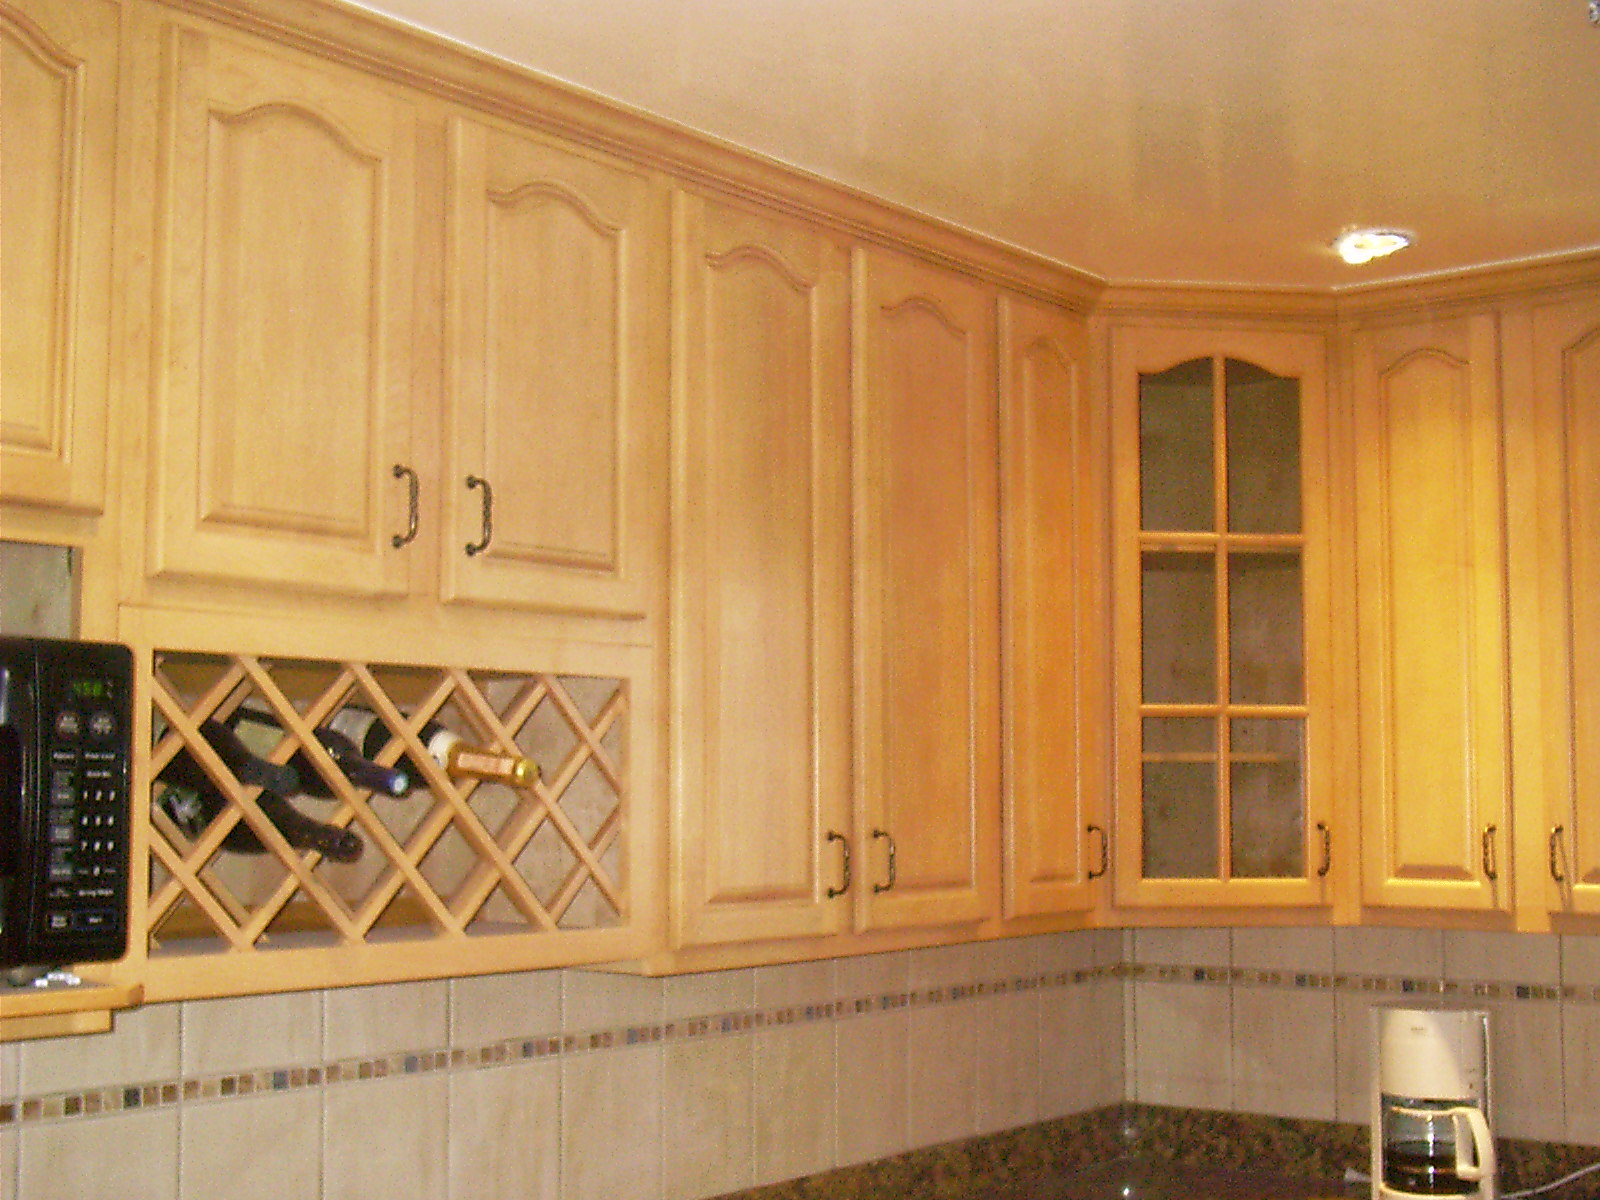 The Best Types of Wood for Building Cabinets - The Basic ... on Maple Cabinets  id=71139